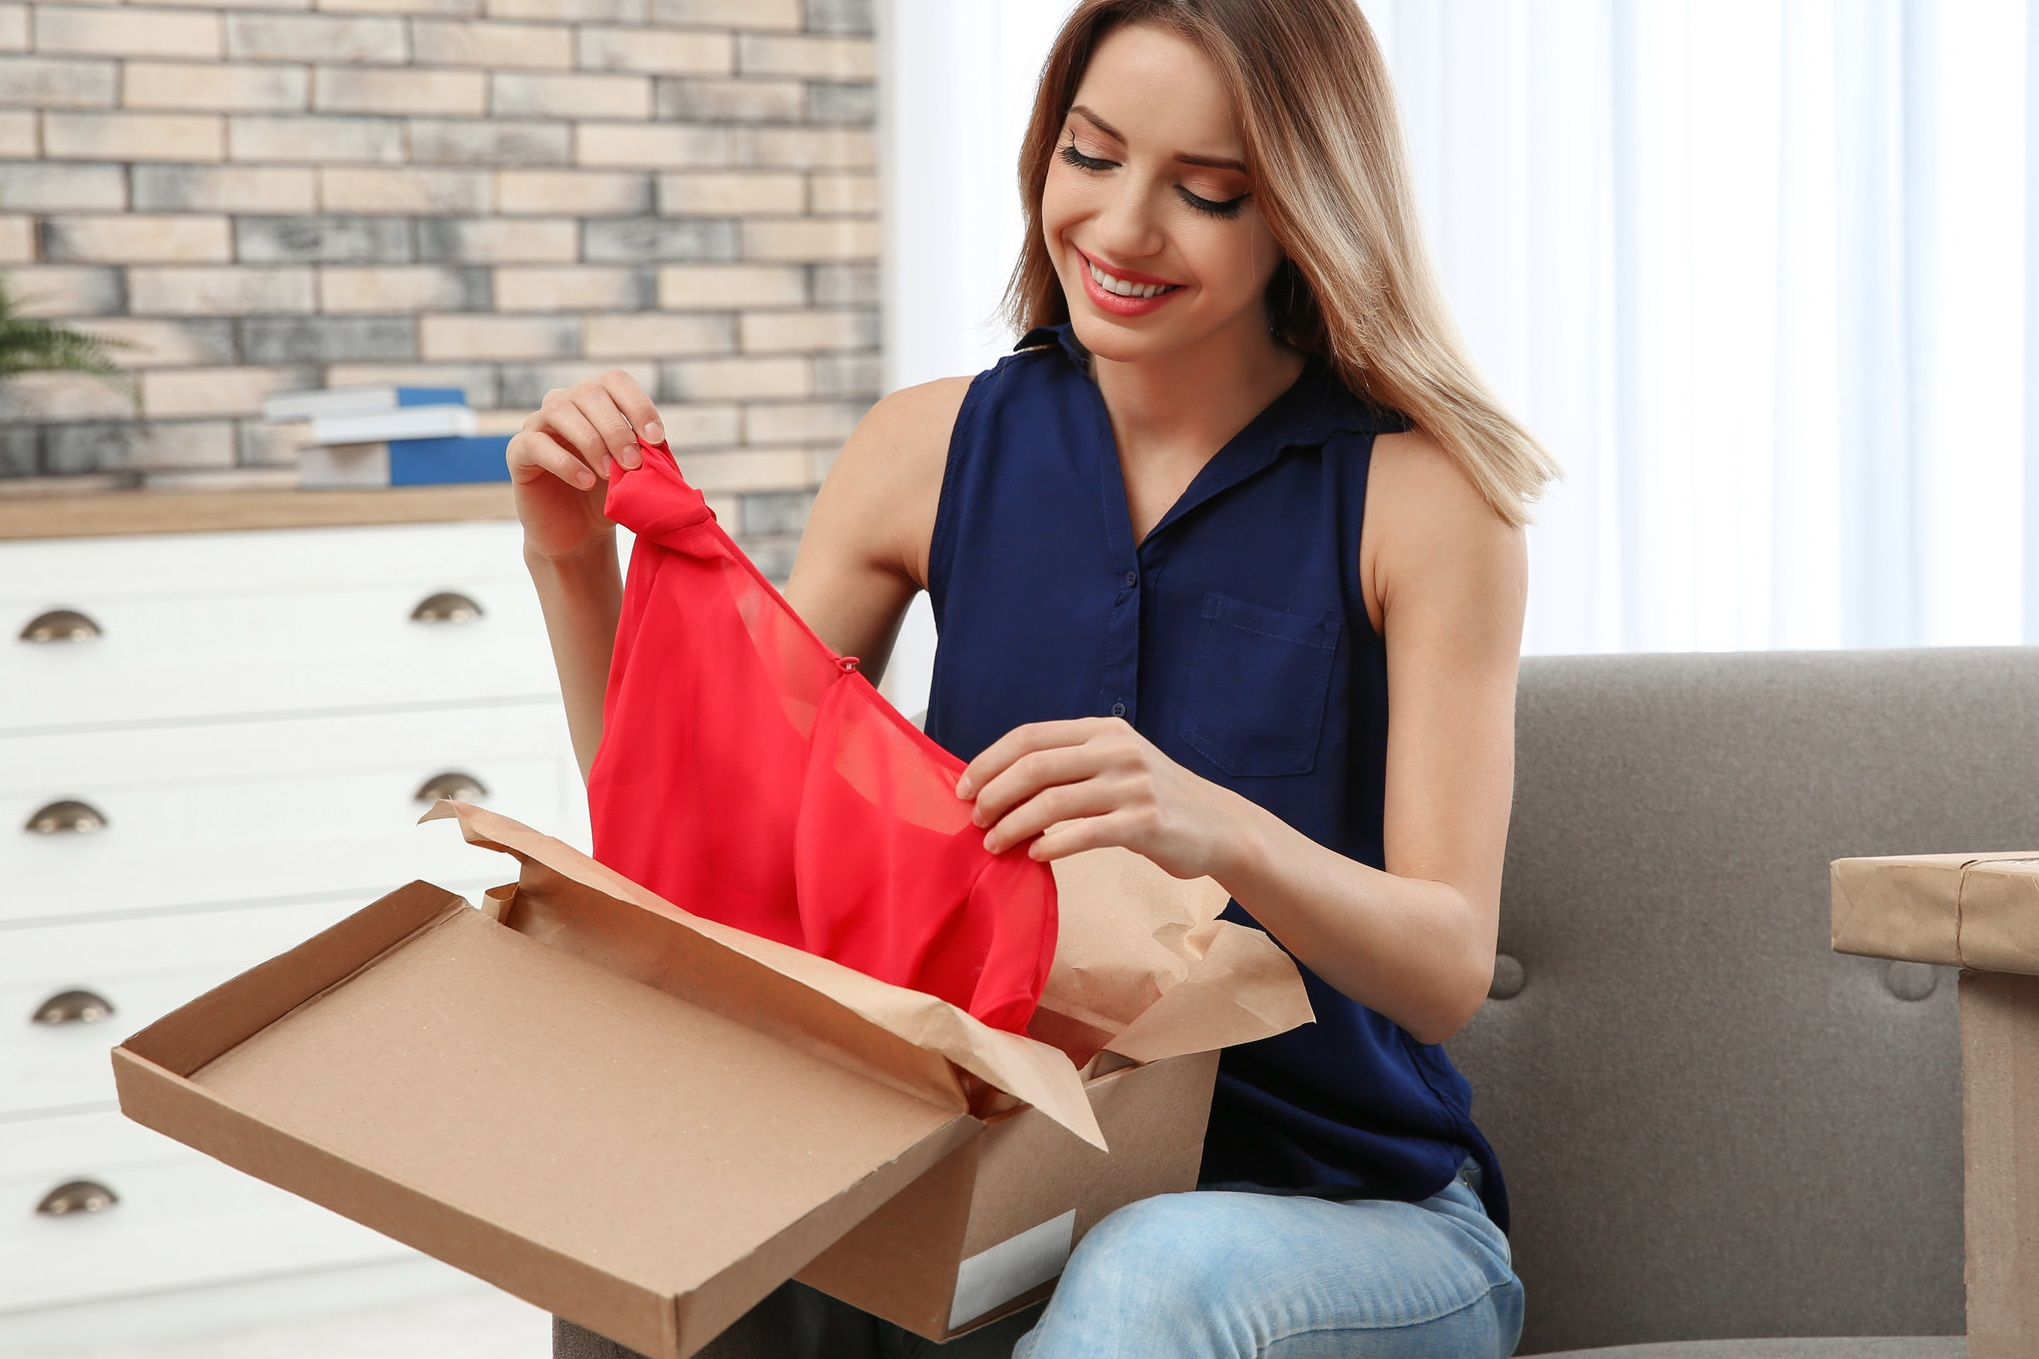 bigstock-Young-Woman-Opening-Parcel-On--284699284.jpg